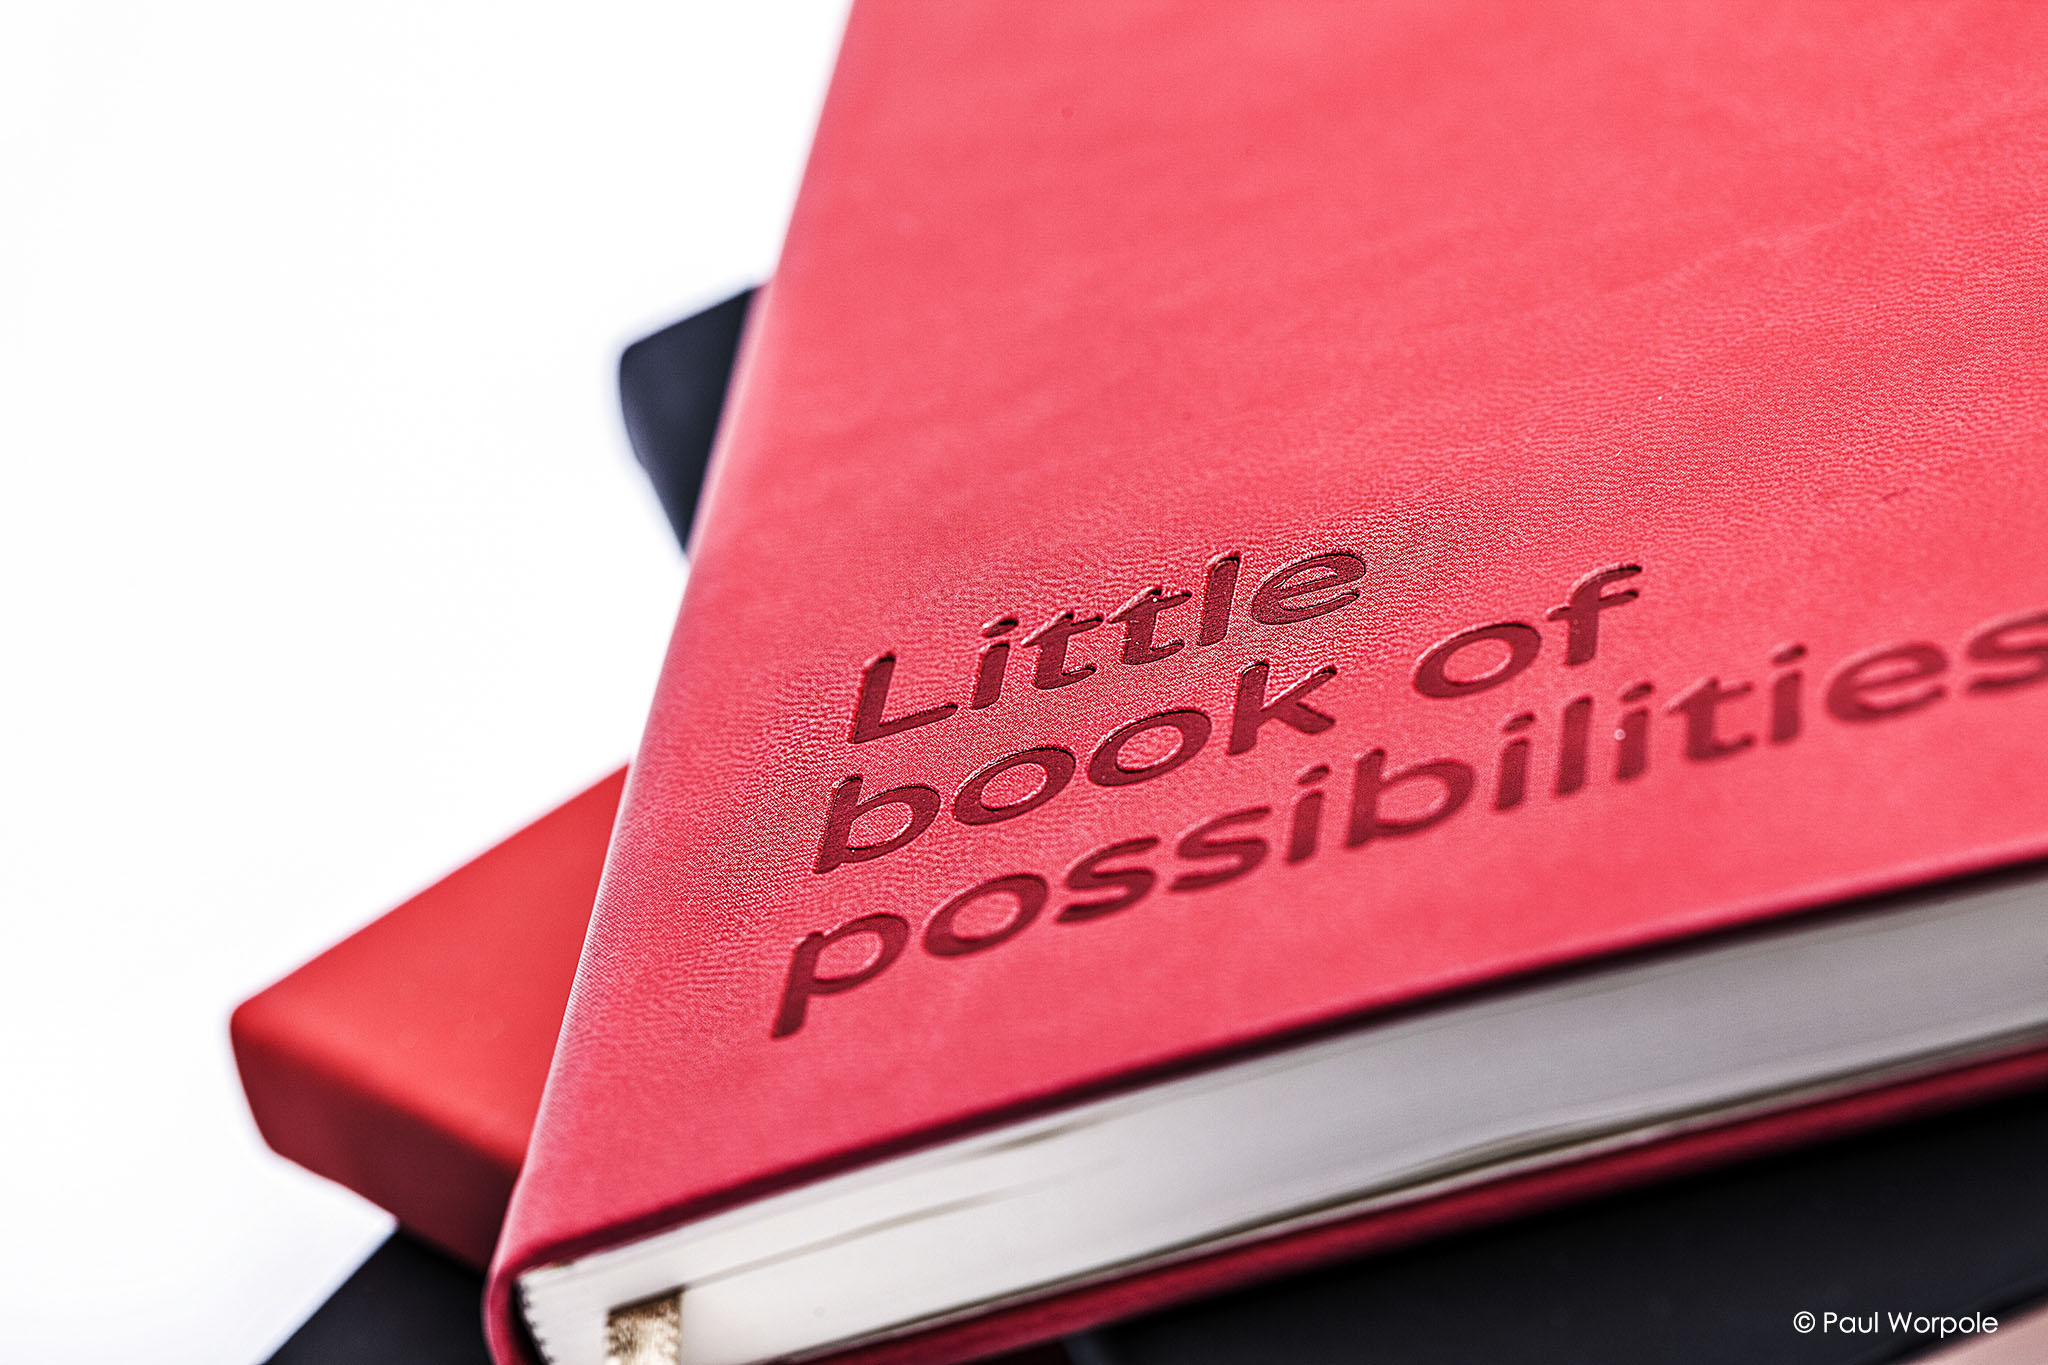 Advertising photography of red leather note book with Little book of possibilities embossed on cover © Paul Worpole Photography